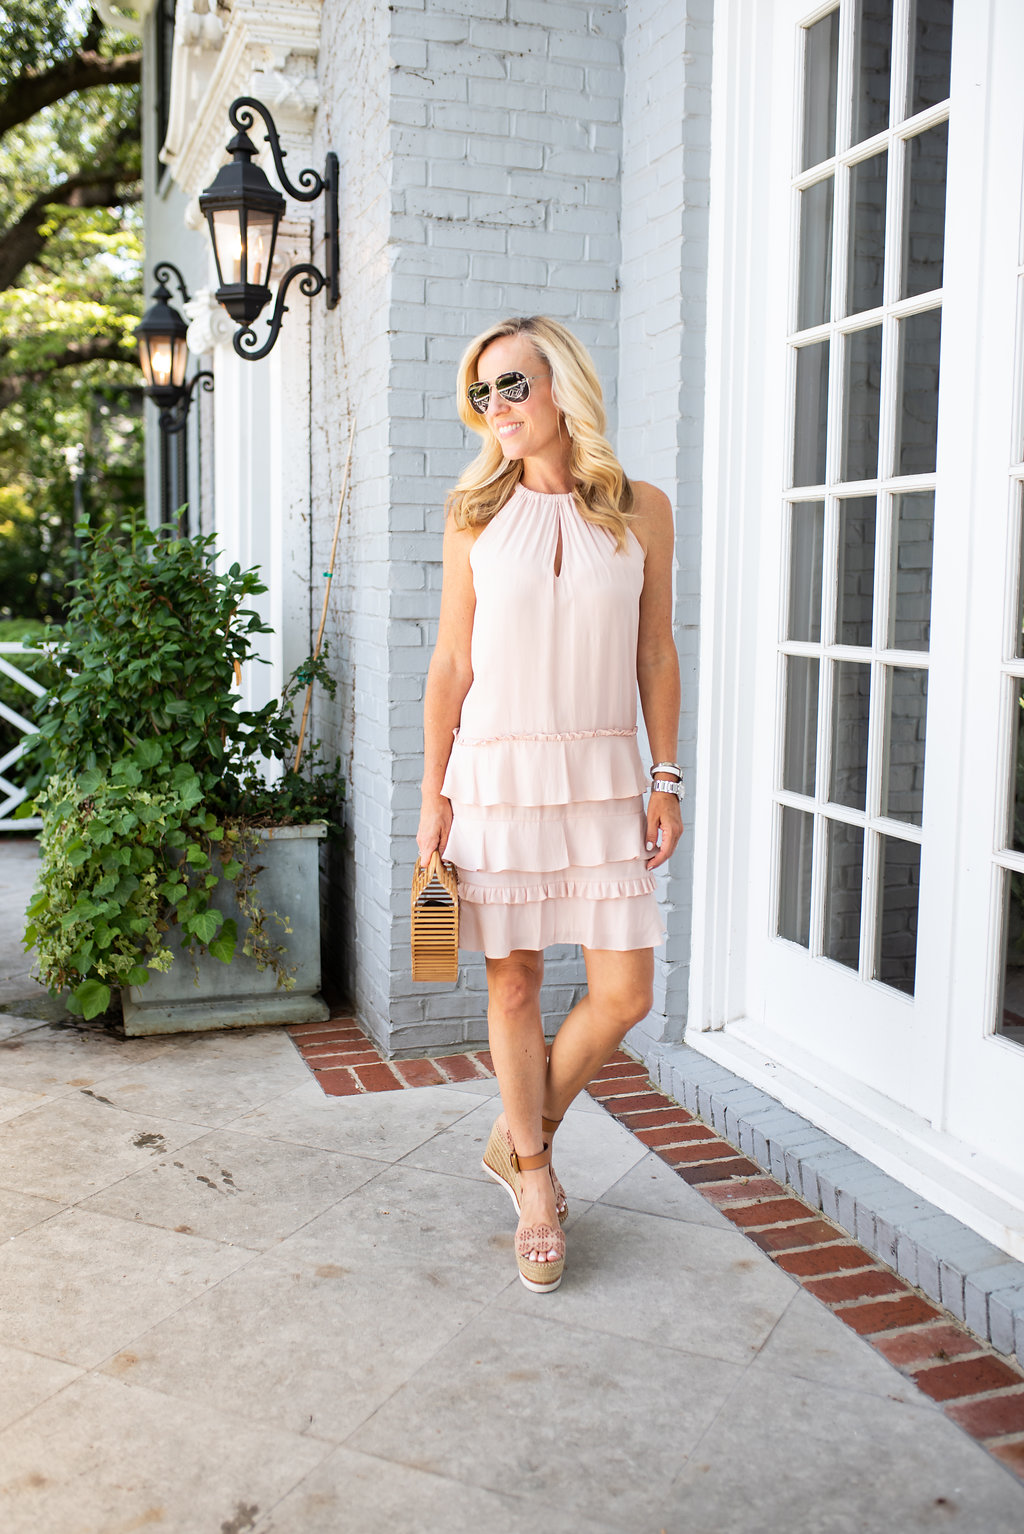 Wear Now, Wear Later | Light Dresses and Jackets for Fall Transition